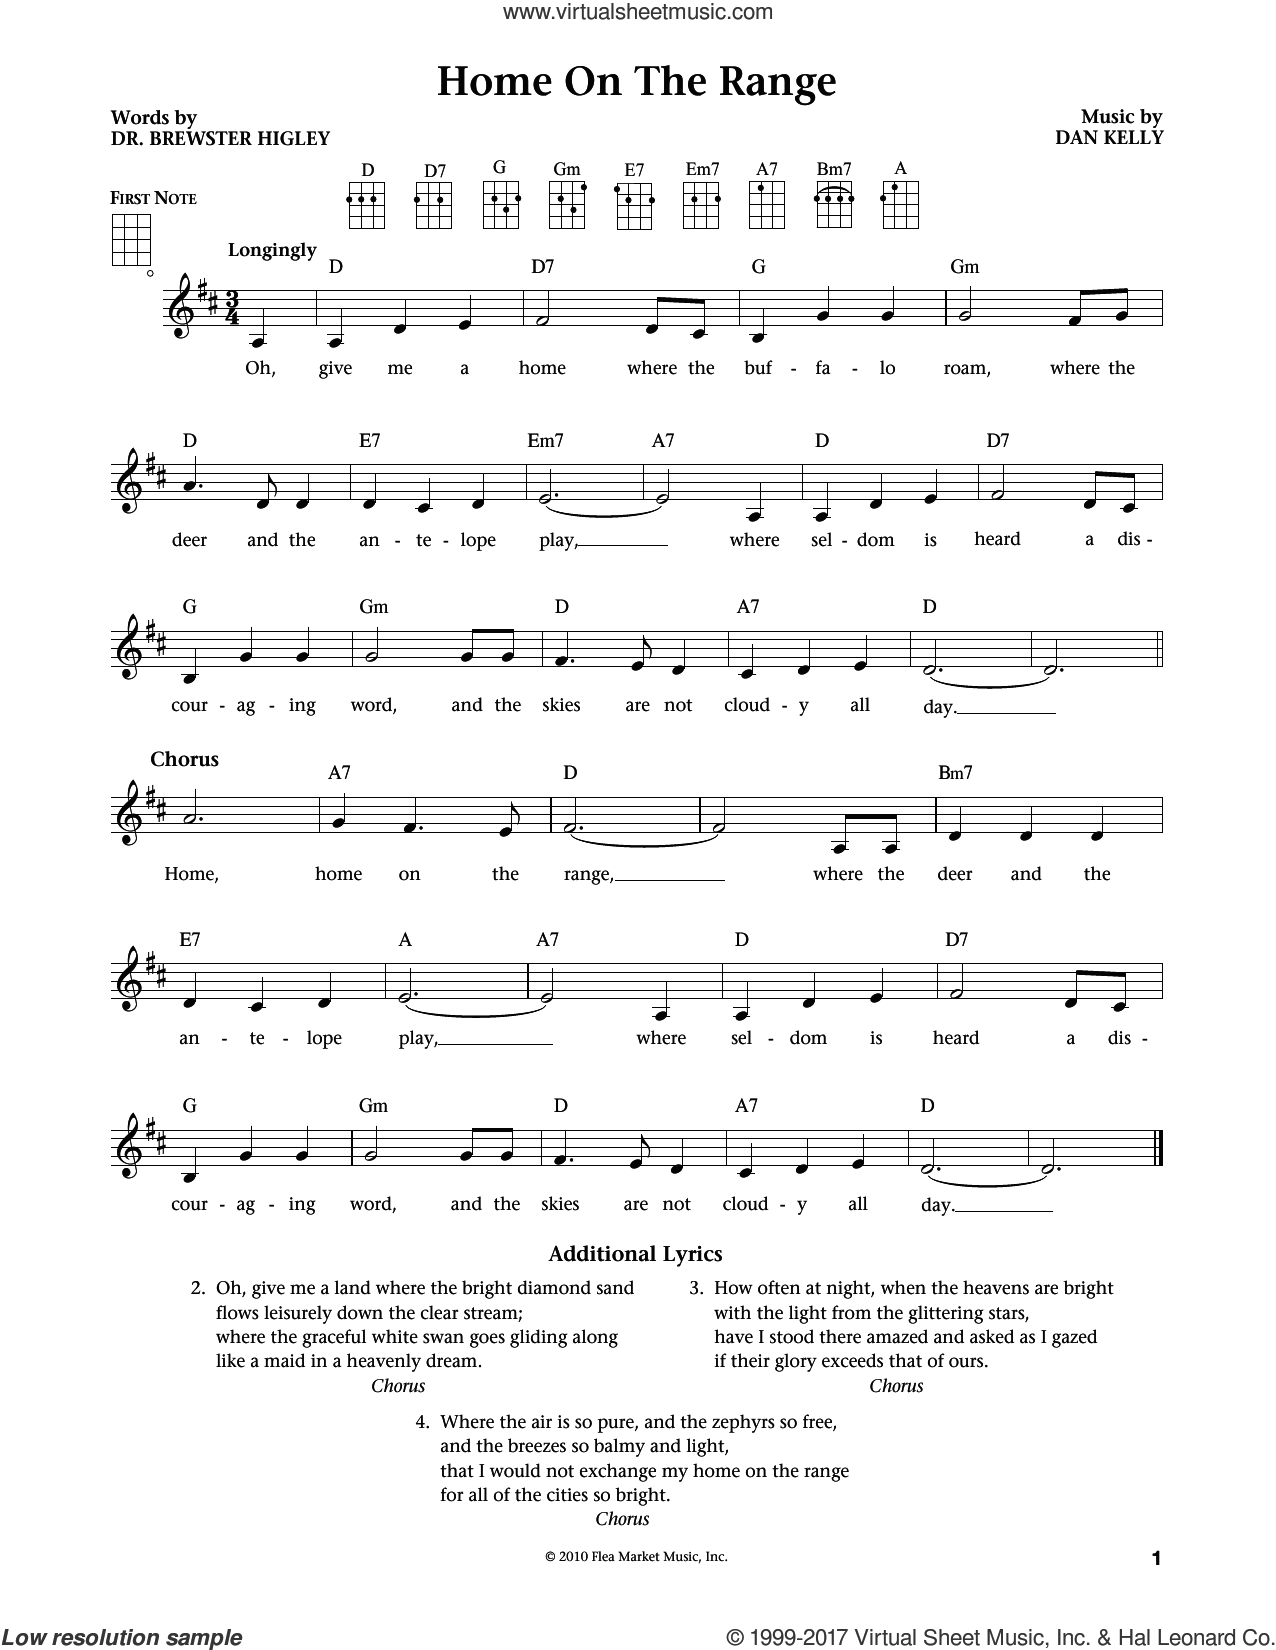 Home On The Range sheet music for ukulele by Dan Kelly, intermediate ukulele. Score Image Preview.